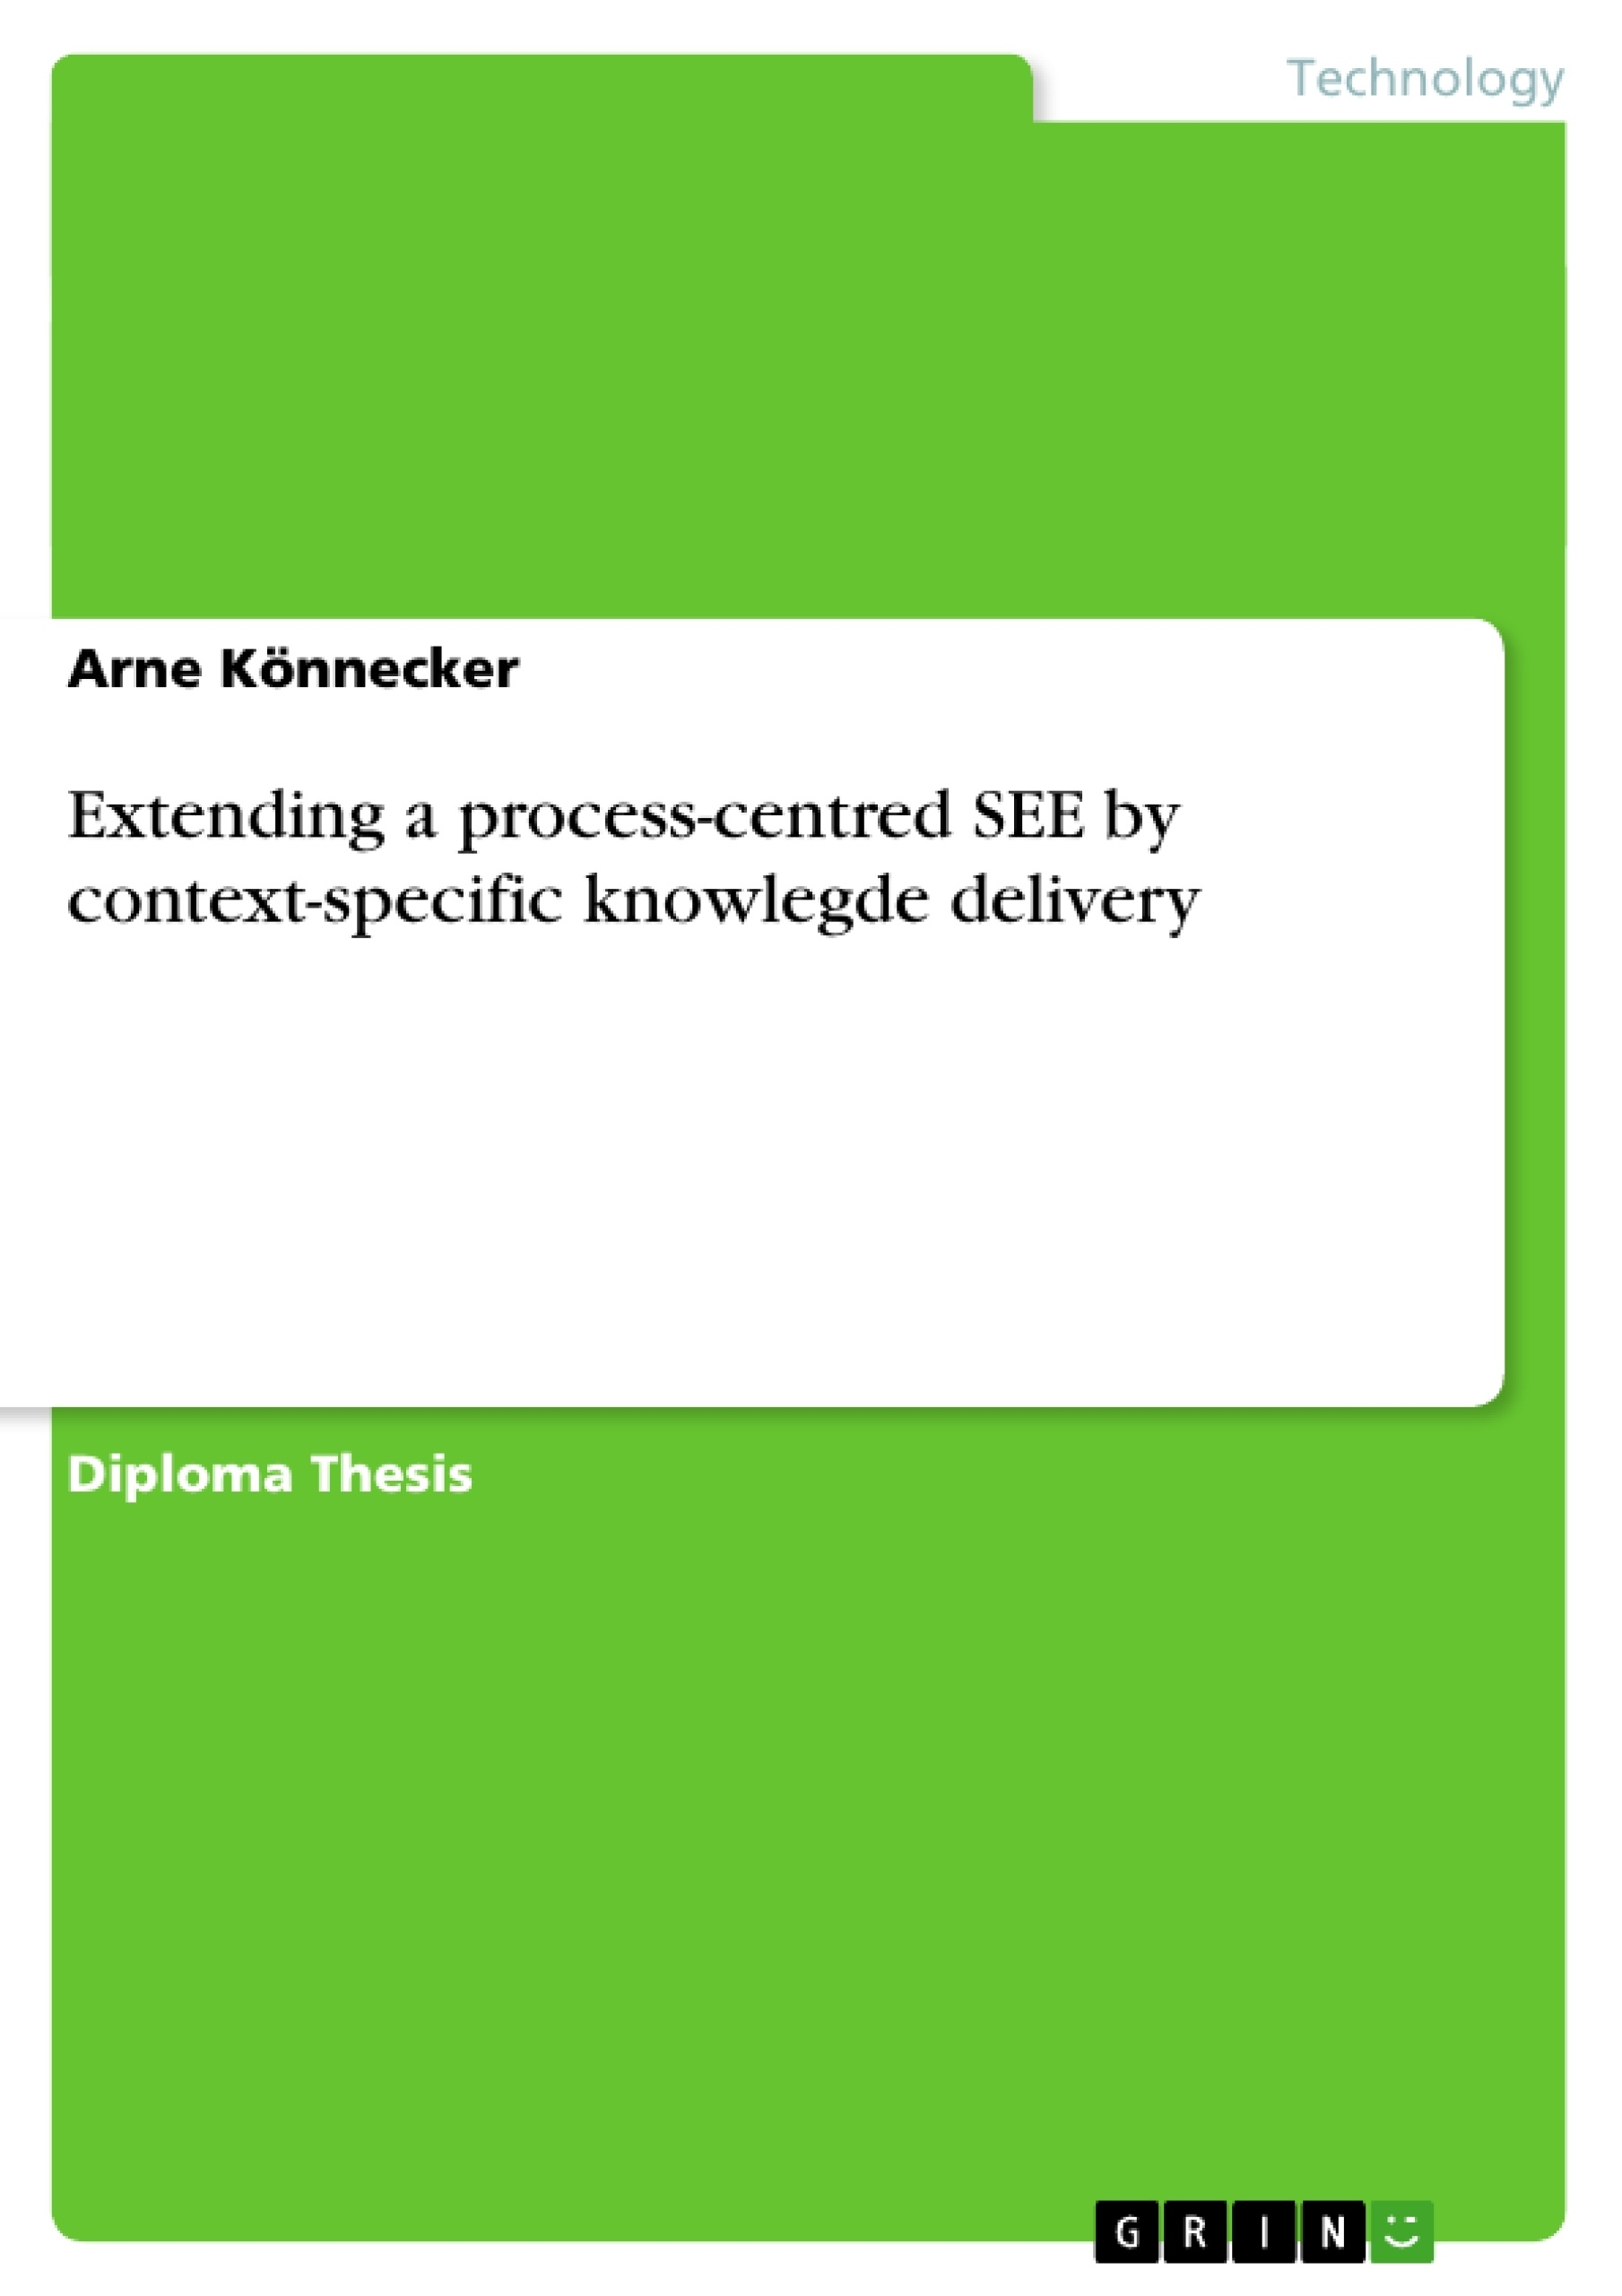 Title: Extending a process-centred SEE by context-specific knowlegde delivery